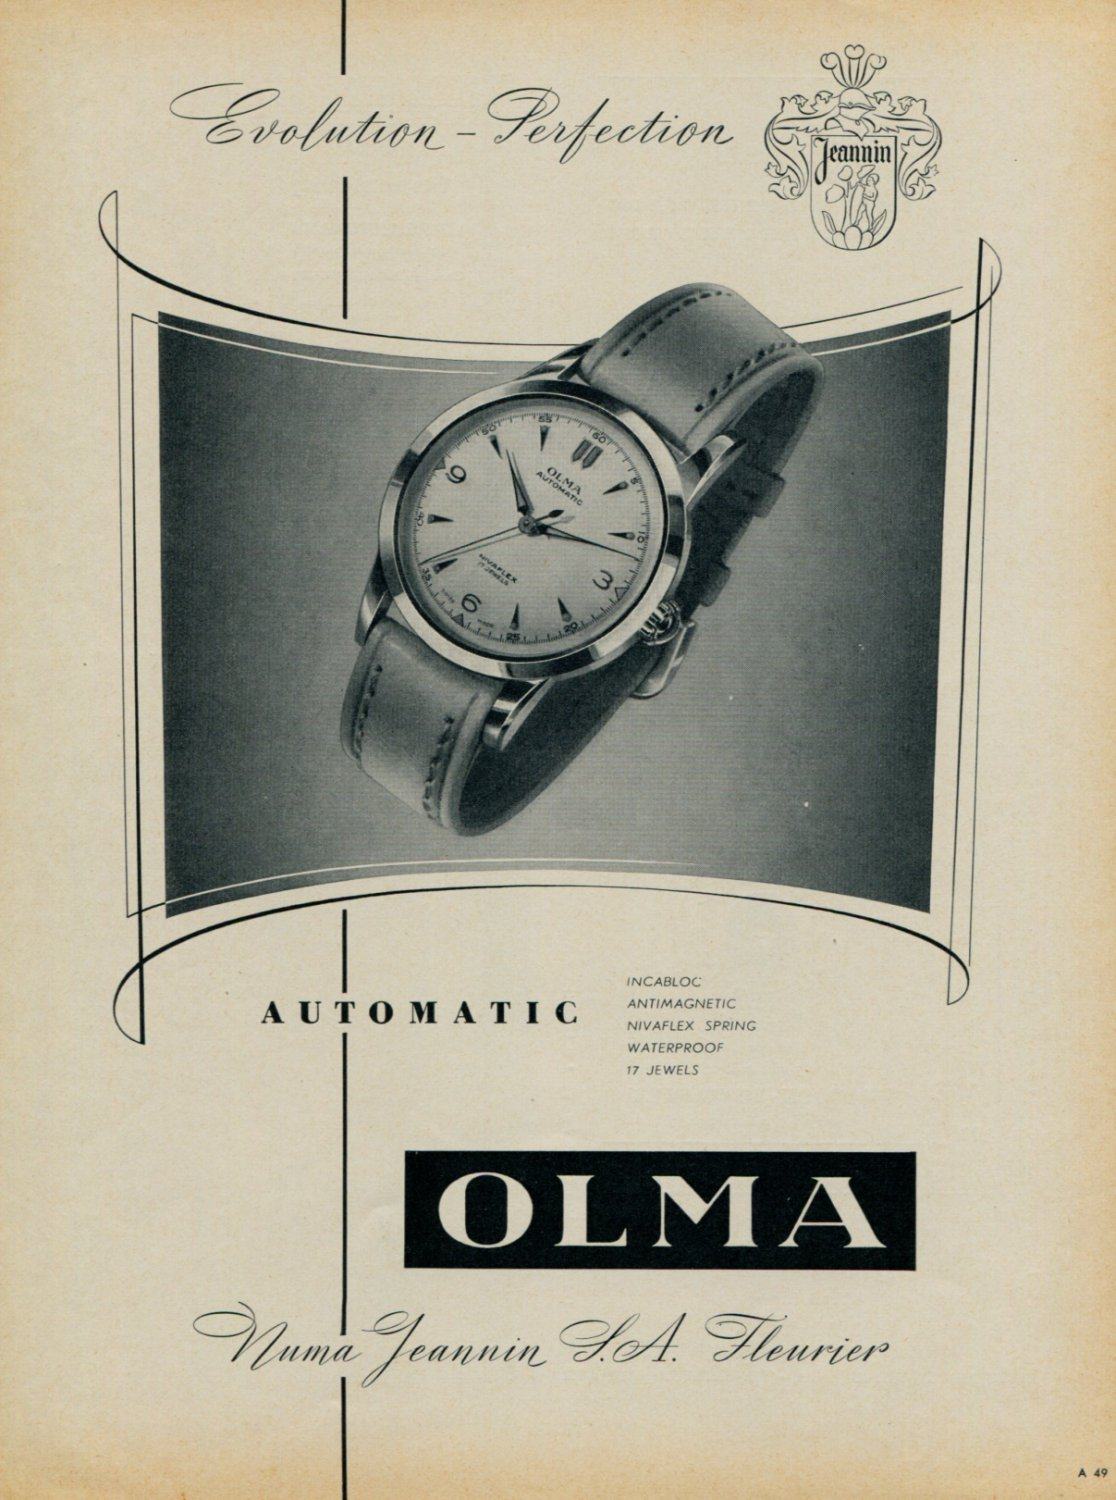 1955 Olma Watch Company Switzerland Vintage 1955 Swiss Ad Suisse Advert Numa Jeannin